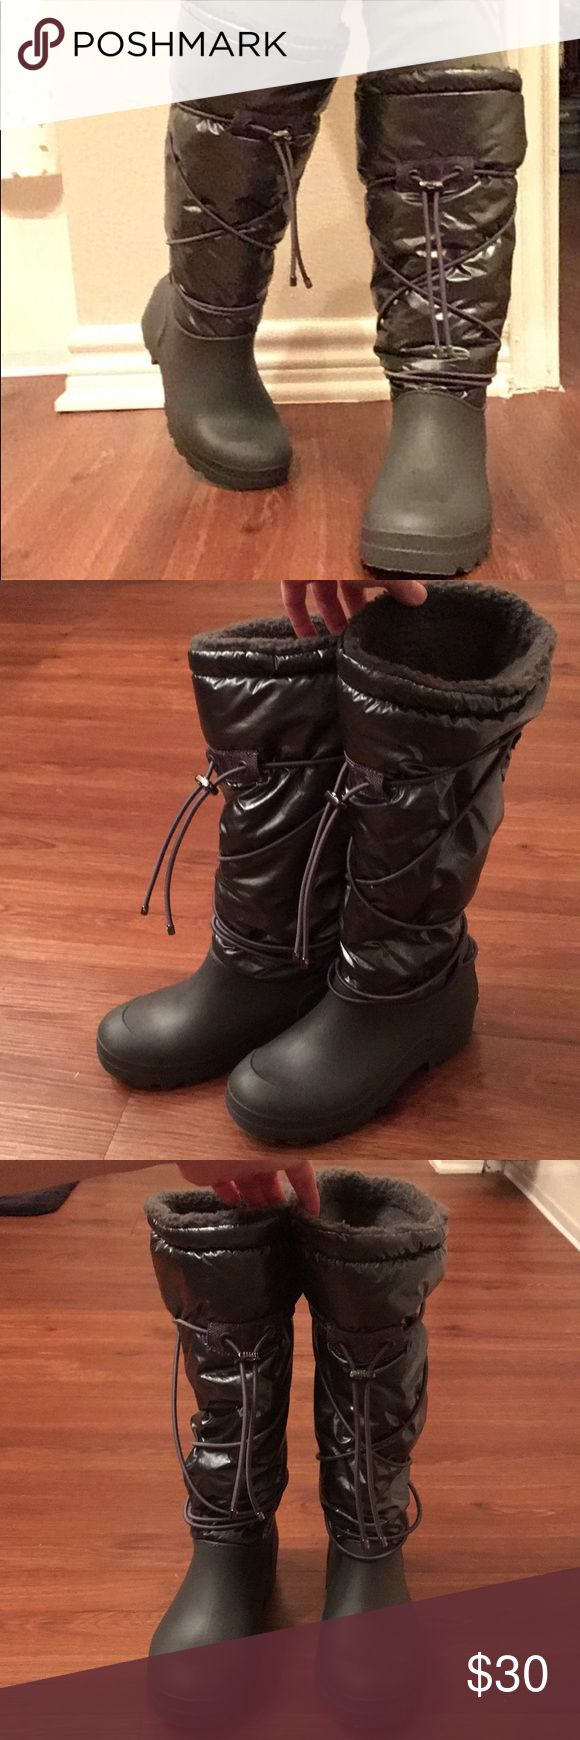 Size 6 Dirty Laundry women's snow boots Dirty laundry size 6 women's snow boots with silver top and grey boot. Worn once on a ski trip. Super soft and warm inside! Very little wear. You can tighten or loosen around the calf/leg area for fit. dirty laundry Shoes Winter & Rain Boots